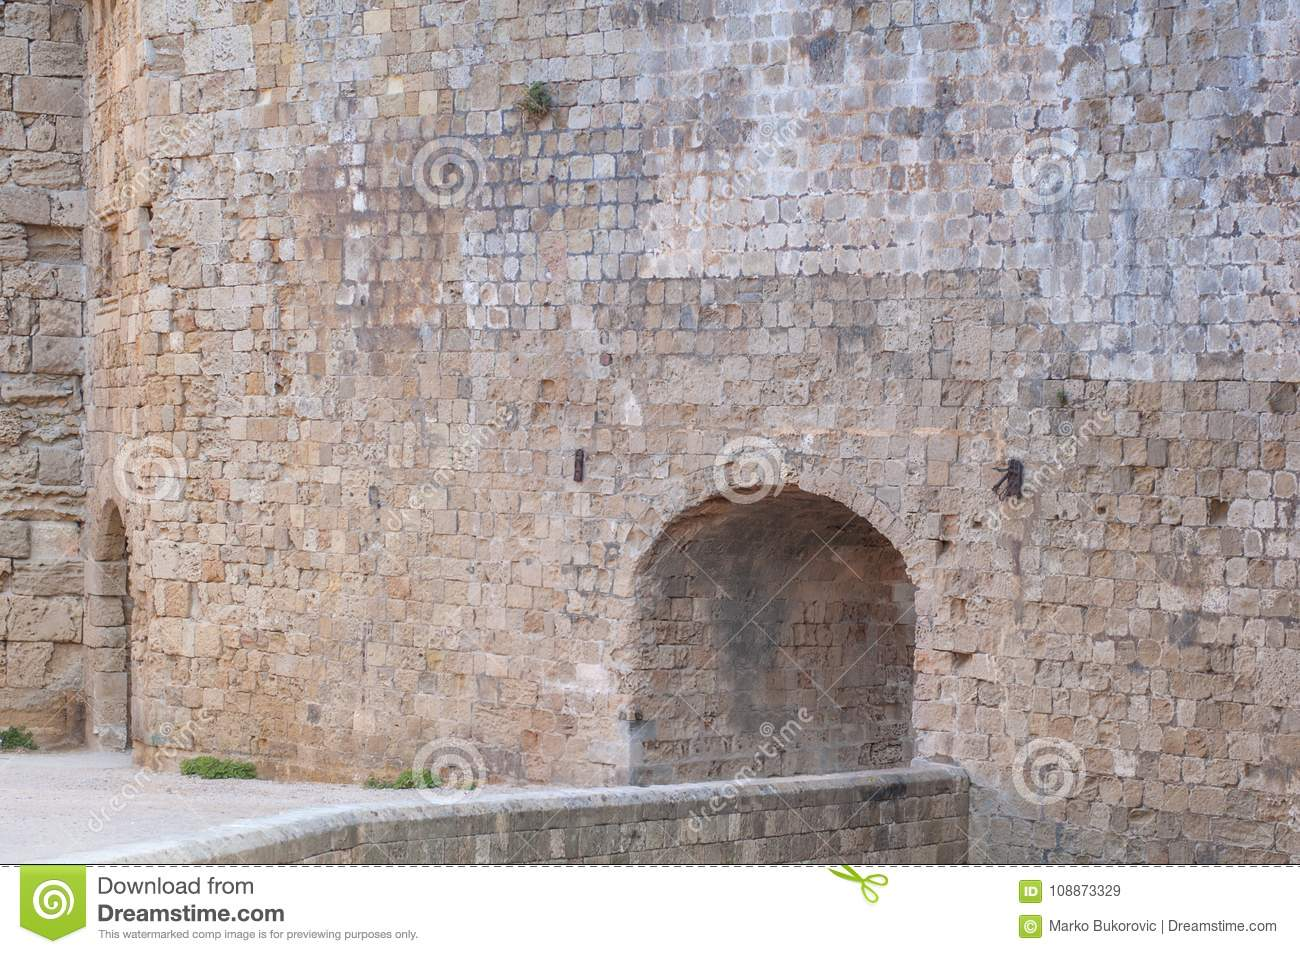 Big castle wall stone architecture building with entrance detail